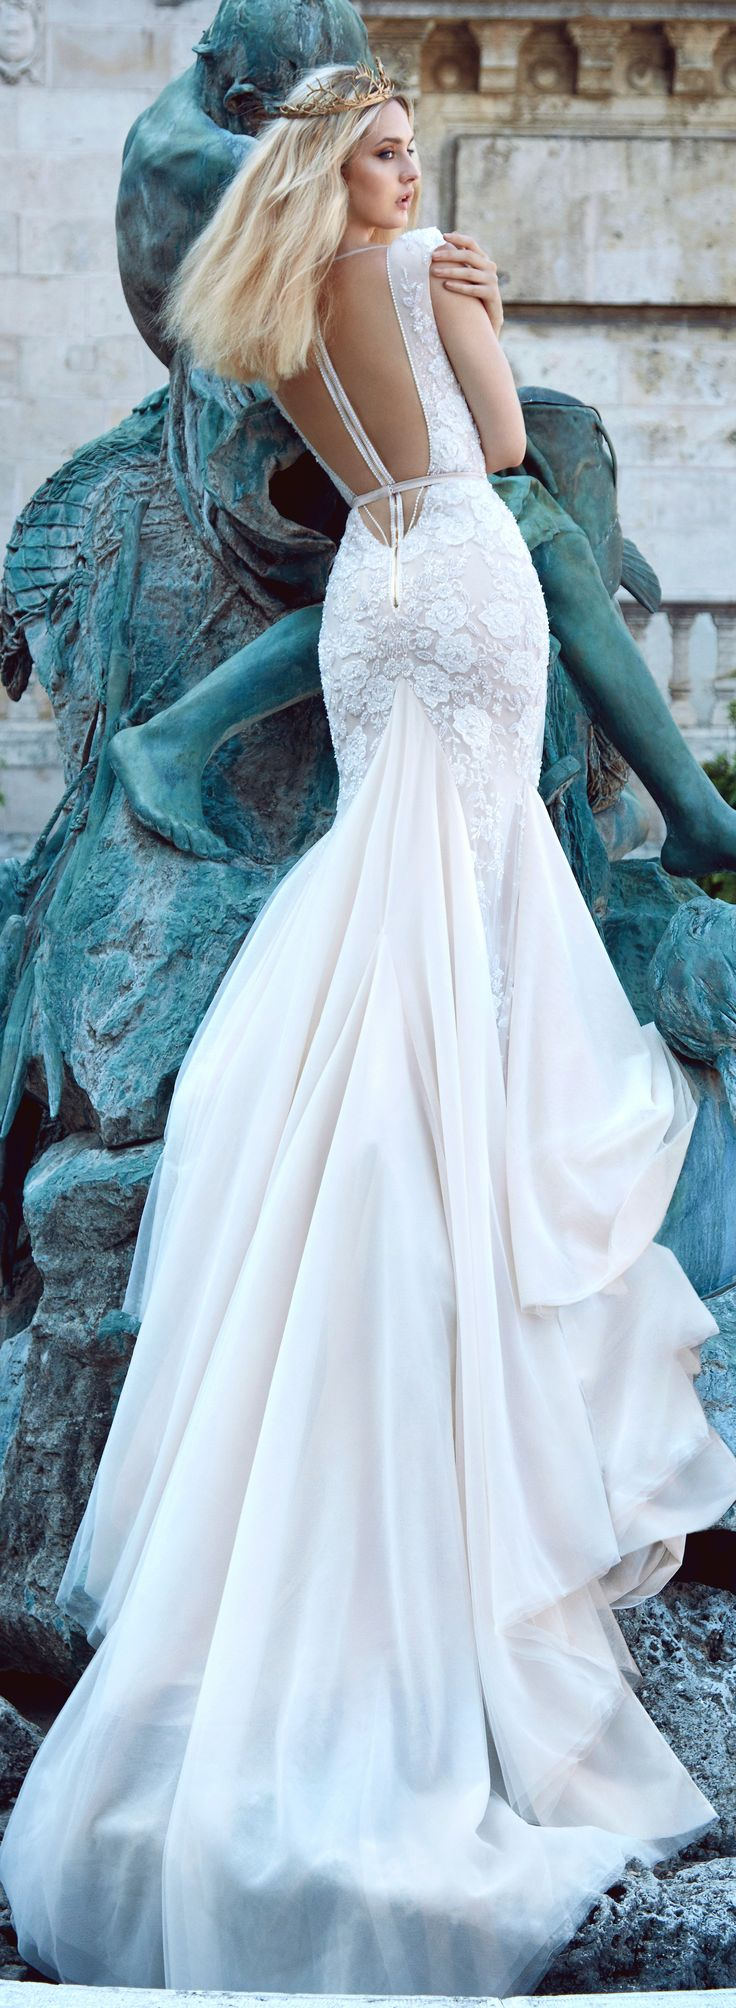 32 best [Collection] Ivory Tower images on Pinterest | Wedding ...